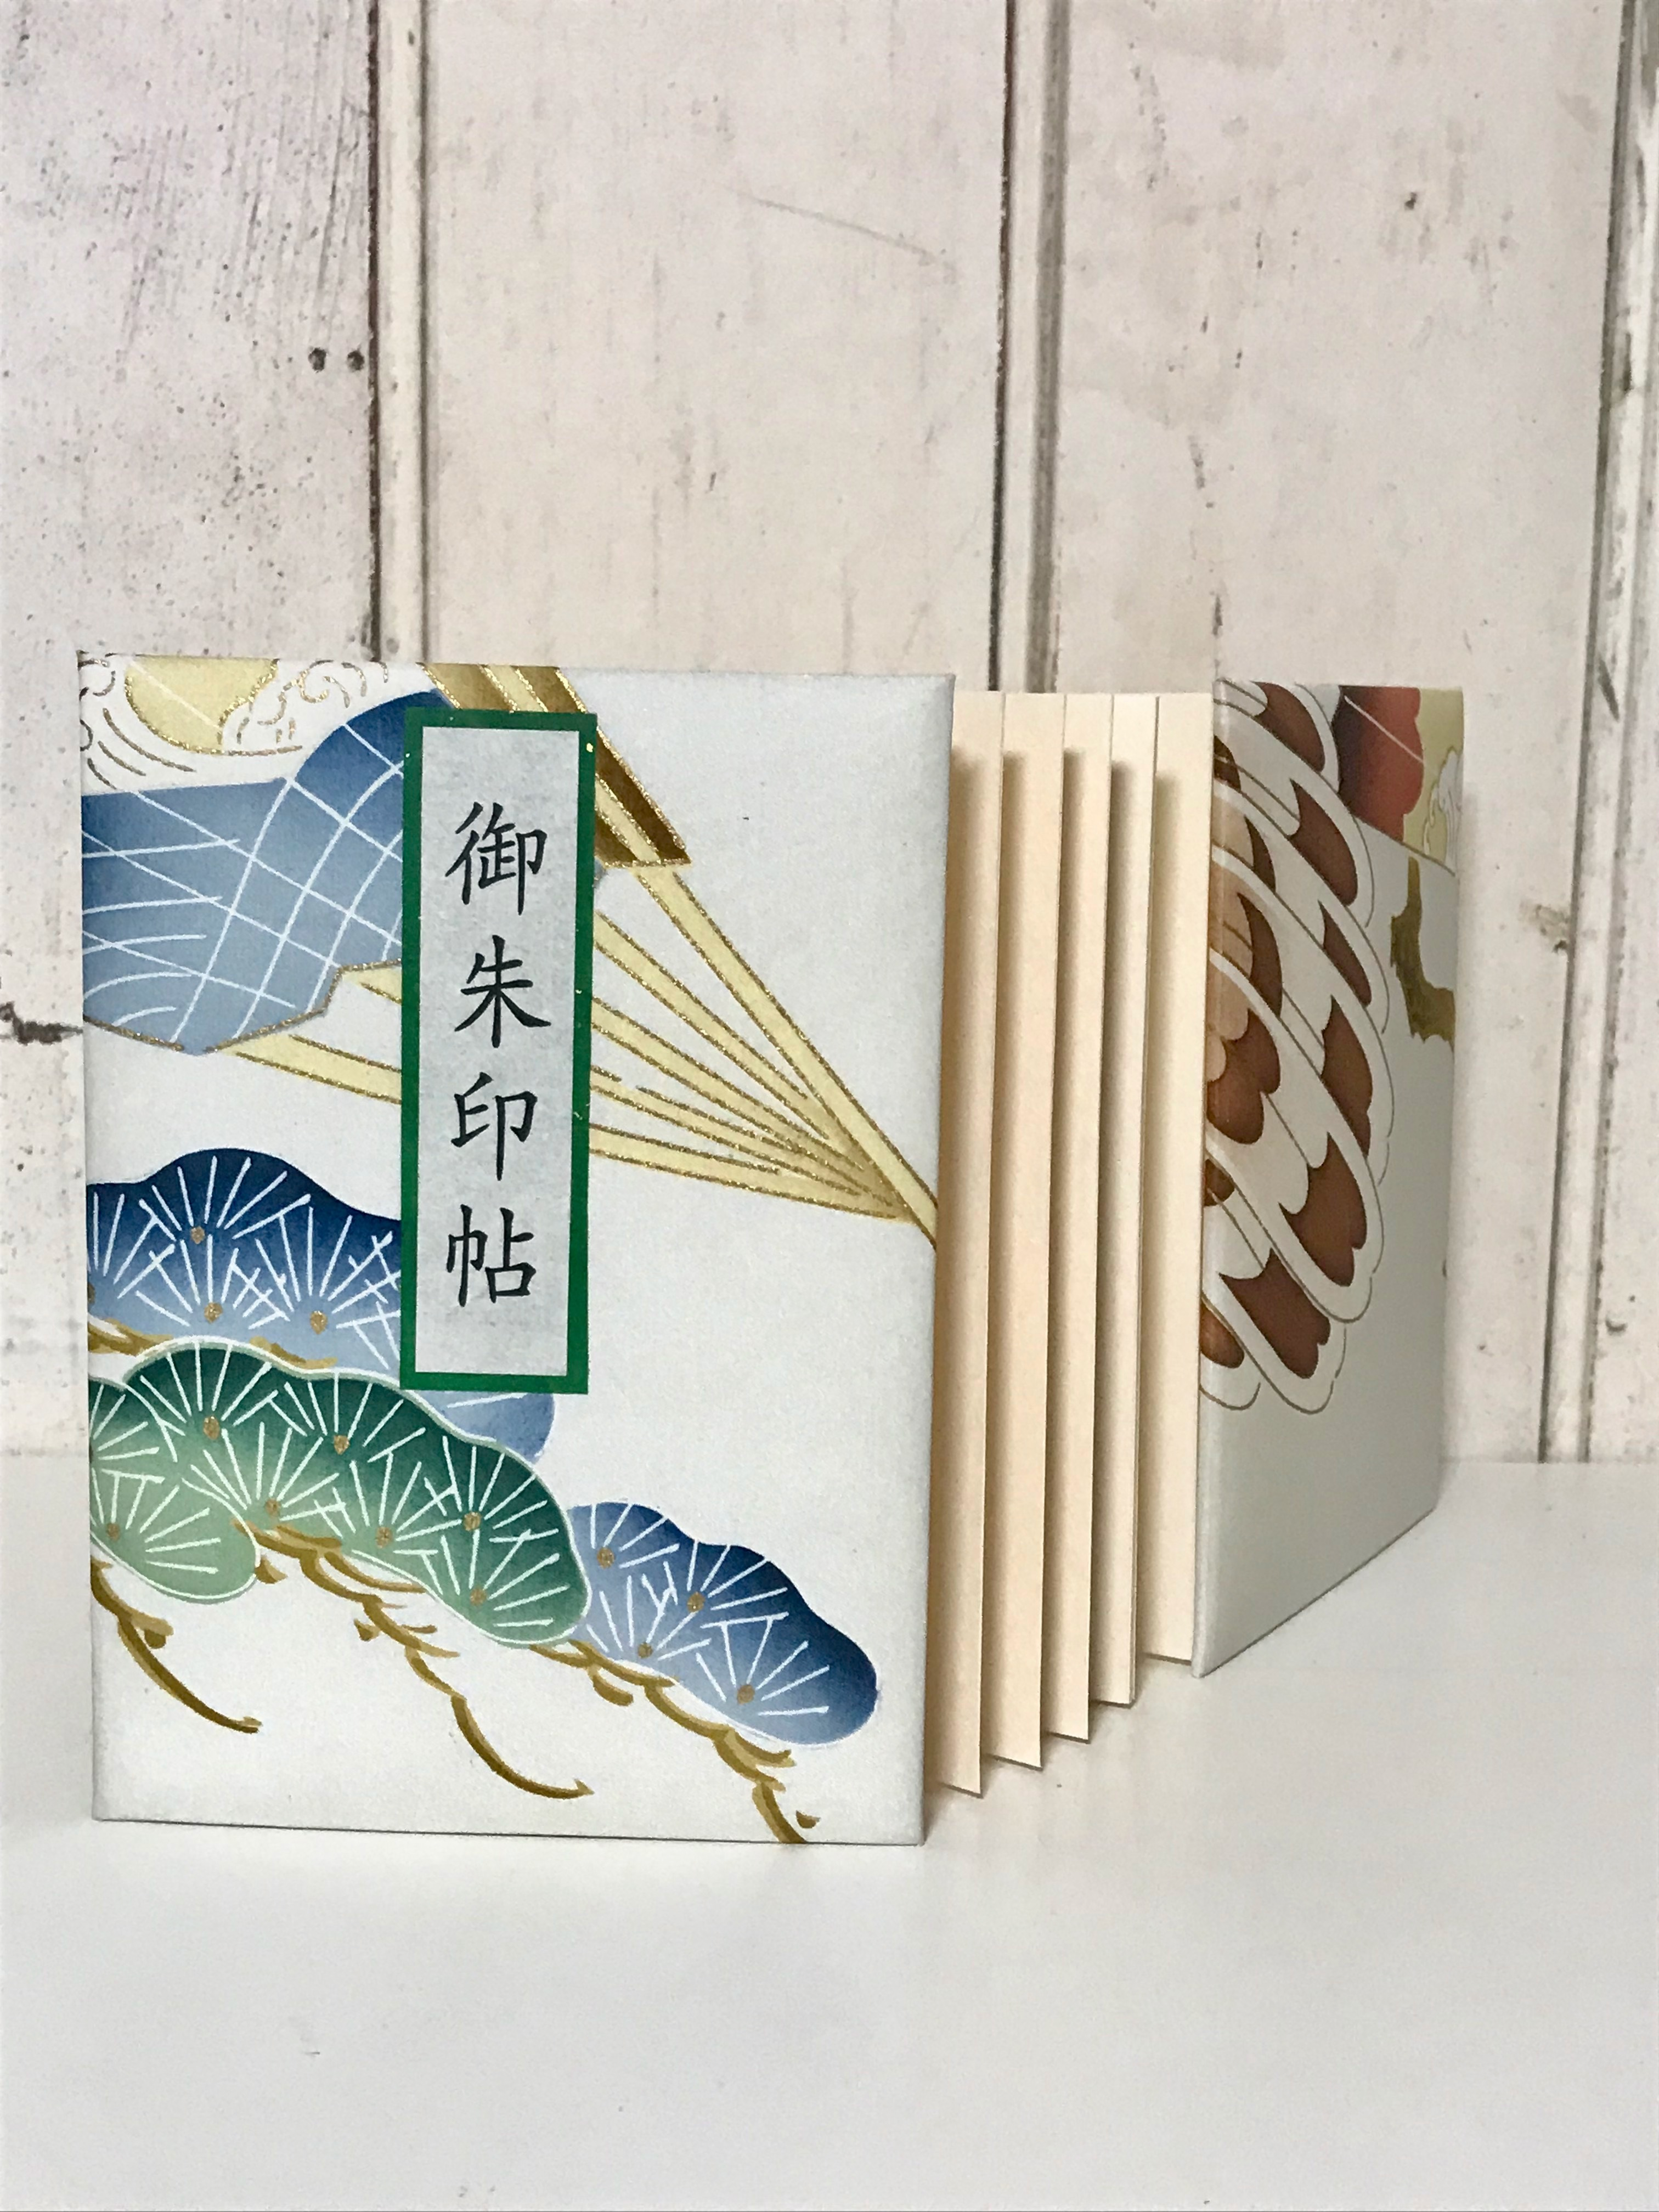 sold out 御朱印帳(松と扇)